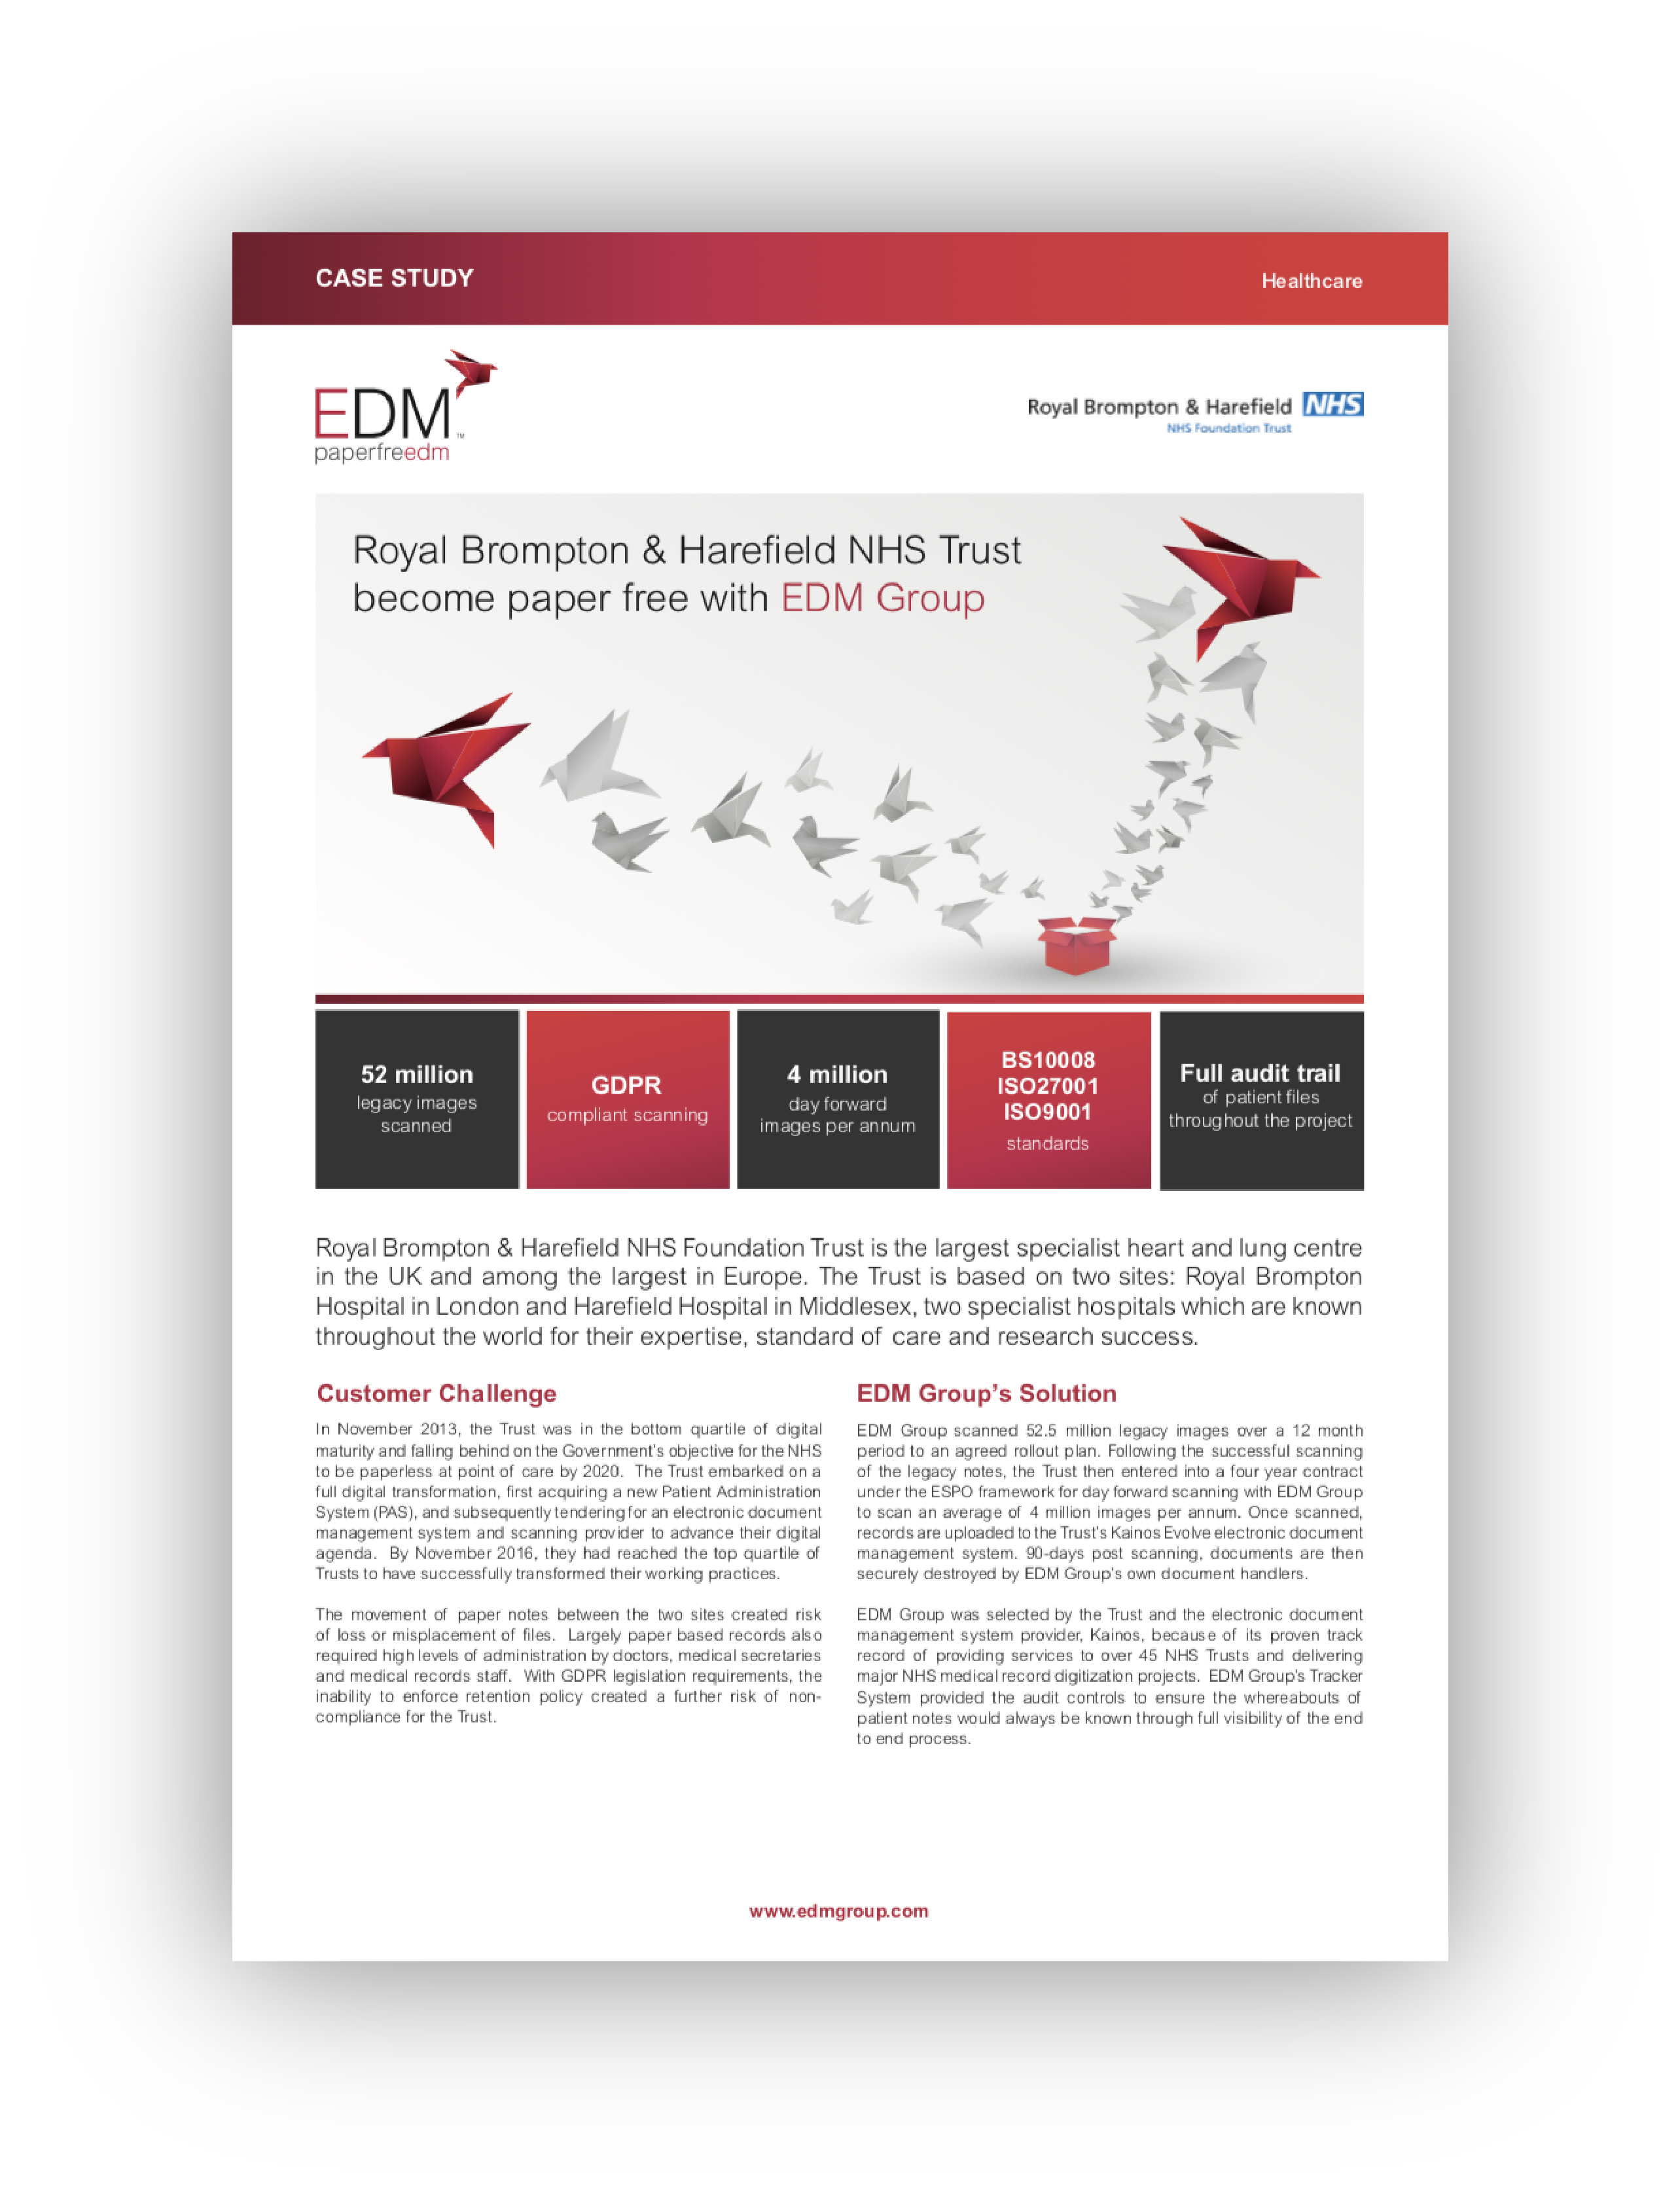 Royal Brompton & Harefield NHS Trust, the UK's largest specialist heart and lung centre contracted EDM Group to scan their legacy medical records transforming their working practices and significantly reducing paper-handling costs.